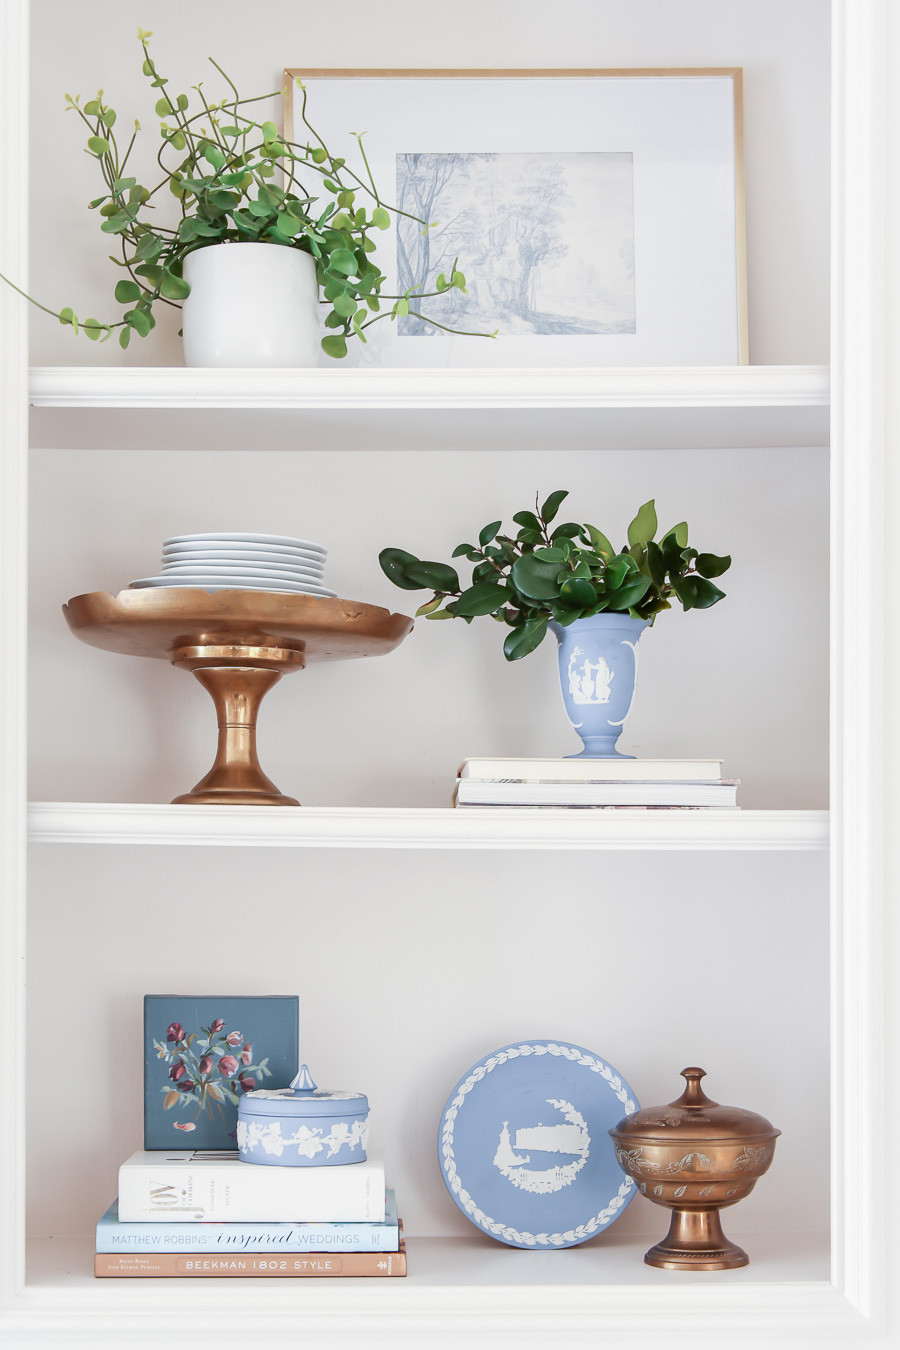 styled kitchen shelf with free art, wedgewood, and prisciclla palmieri art